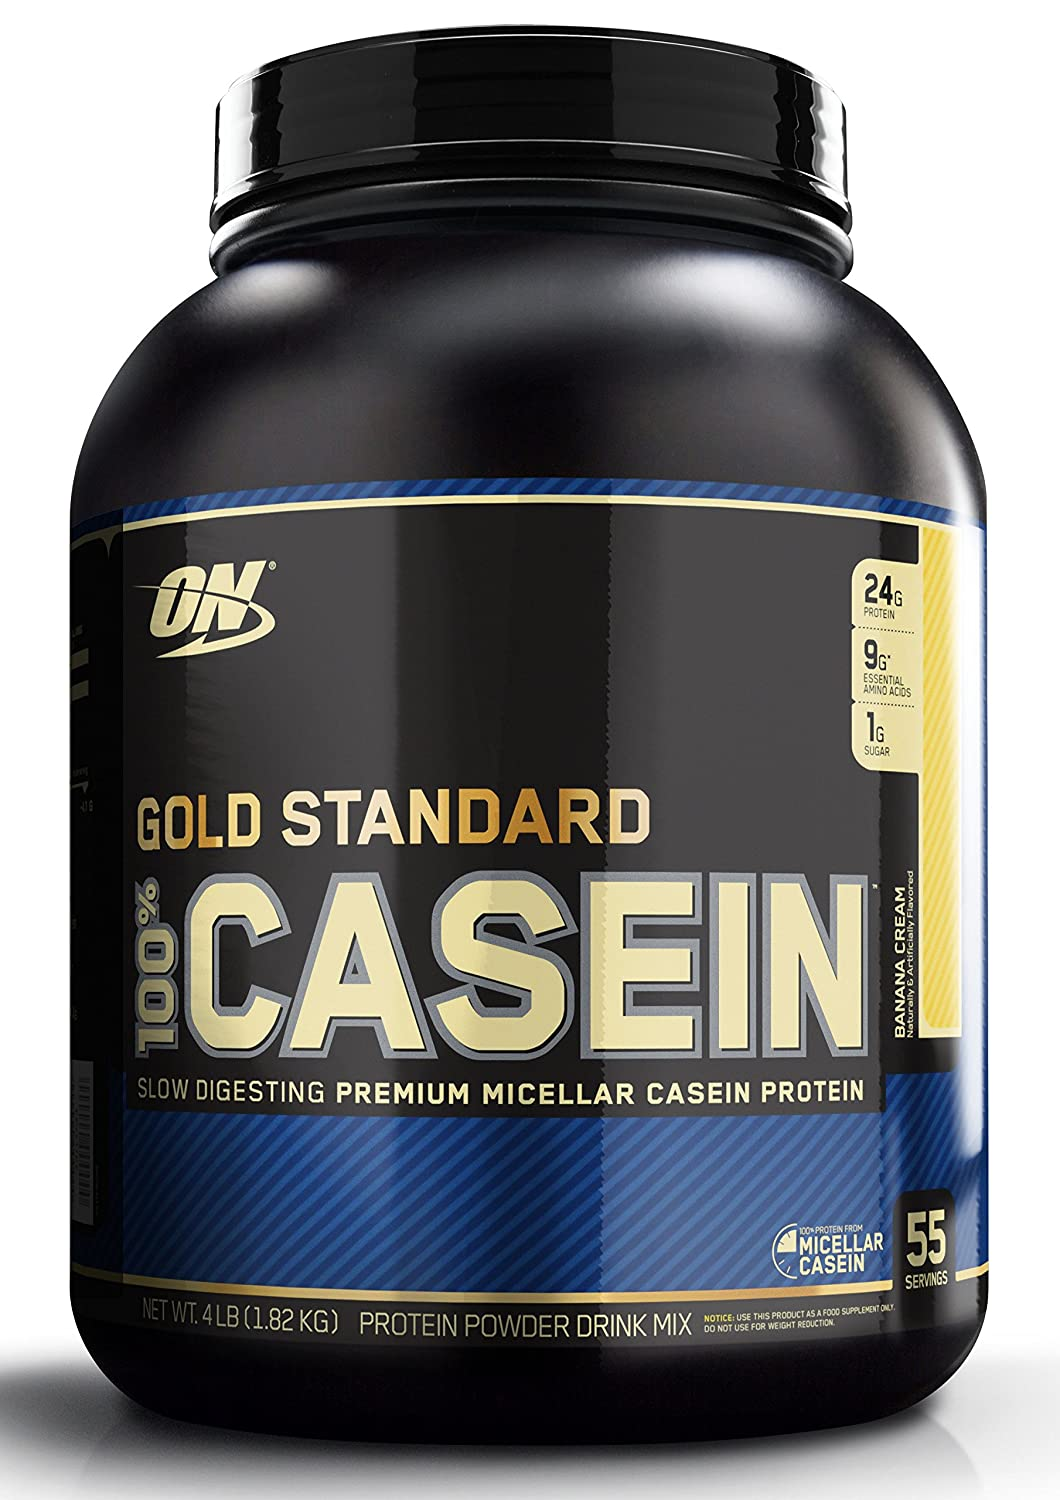 Optimum Nutrition Gold Standard 100 Micellar Casein Froot Loops 300g Free Foot Ball Bowl P Protein Powder Slow Digesting Helps Keep You Full Overnight Muscle Recovery